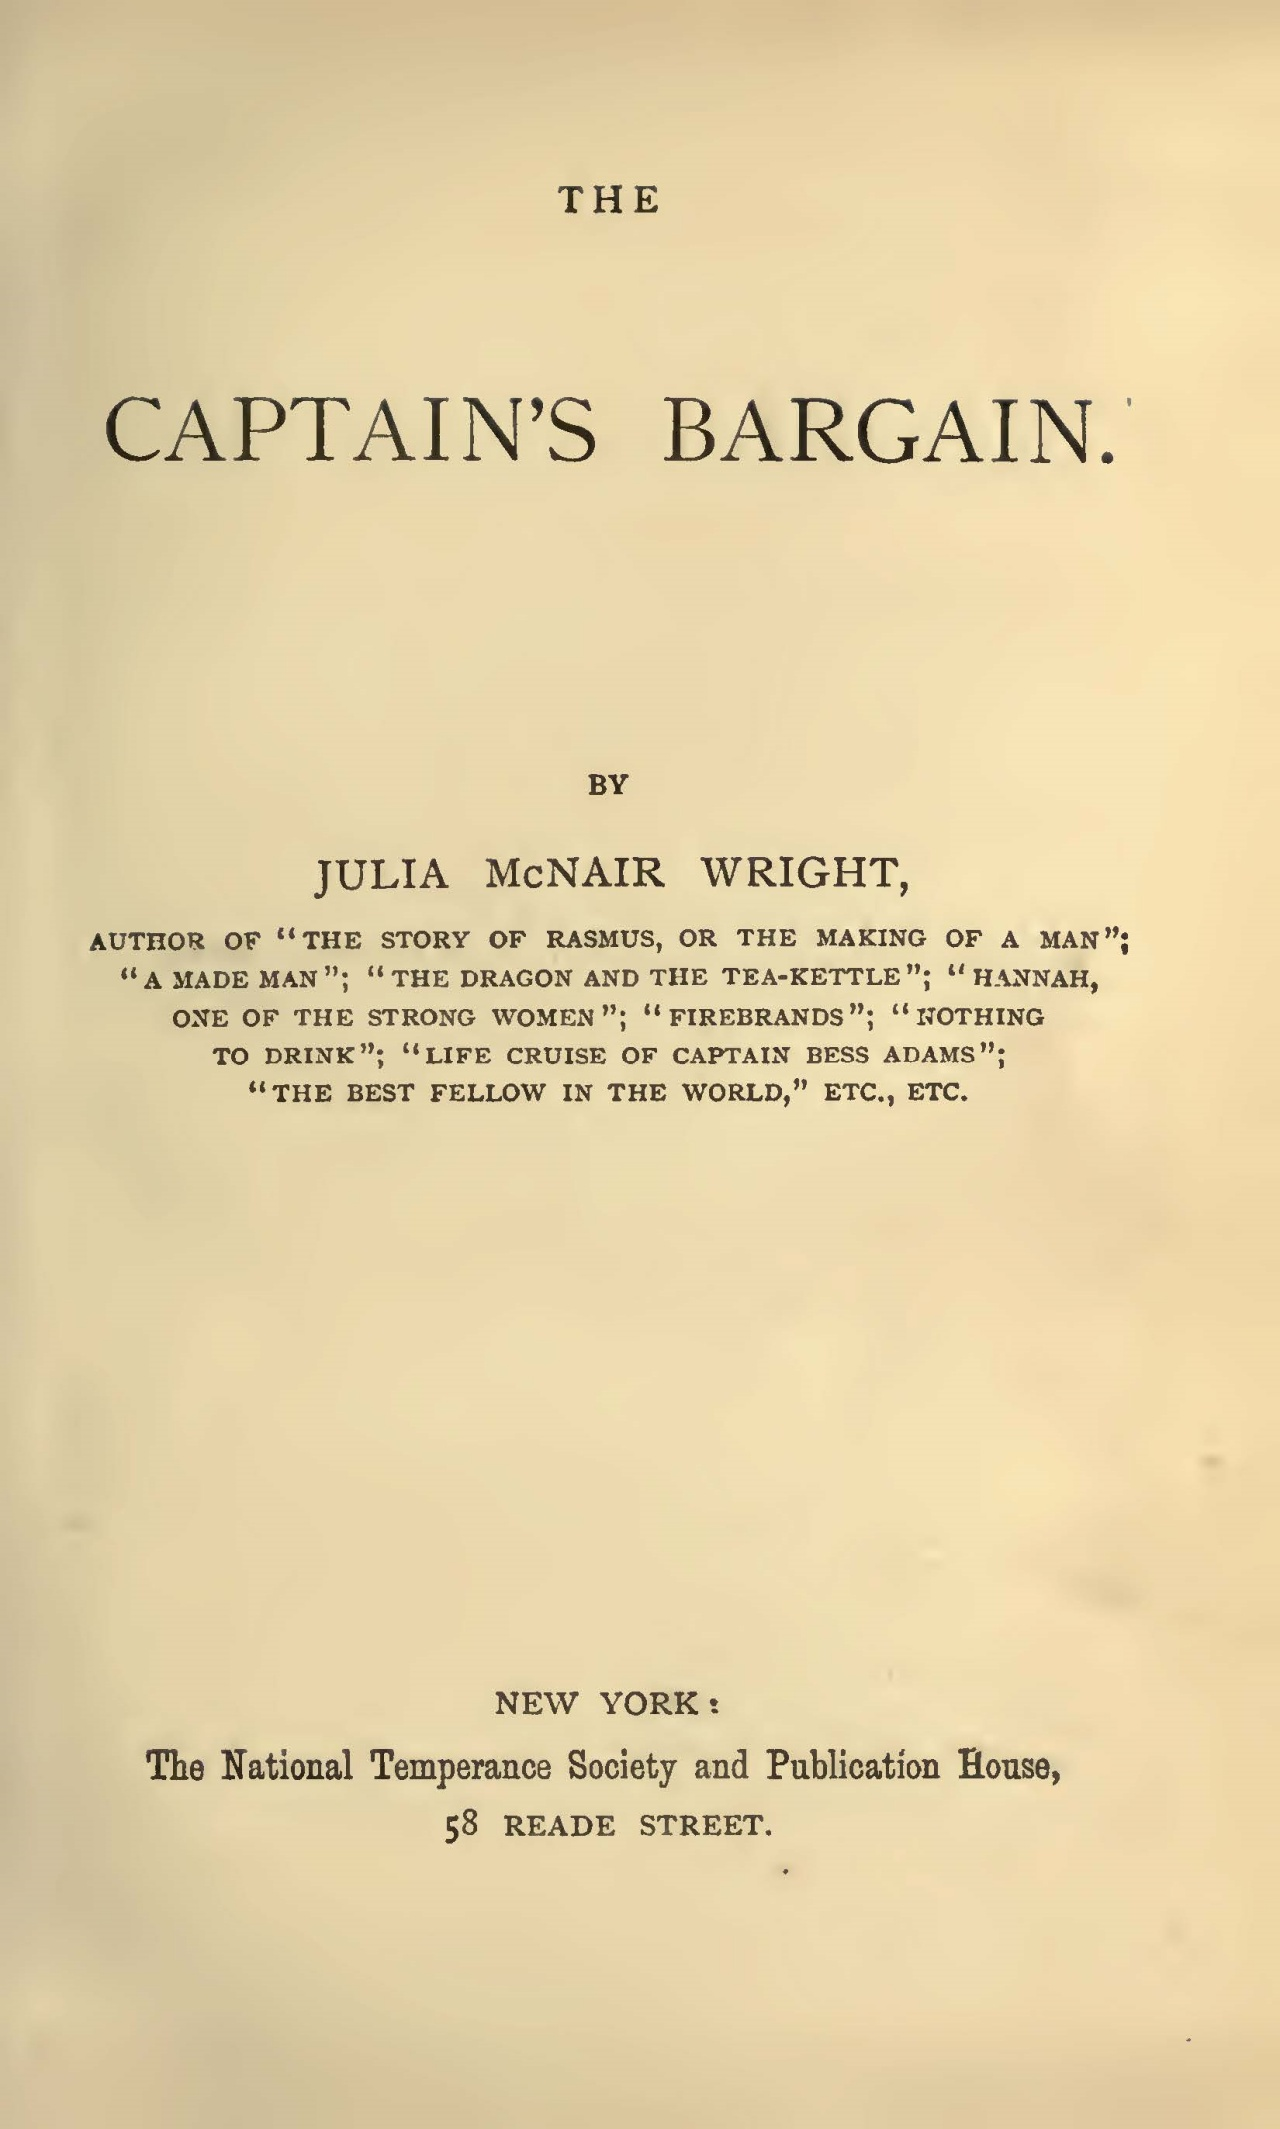 Wright, Julia McNair, The Captain's Bargain Title Page.jpg